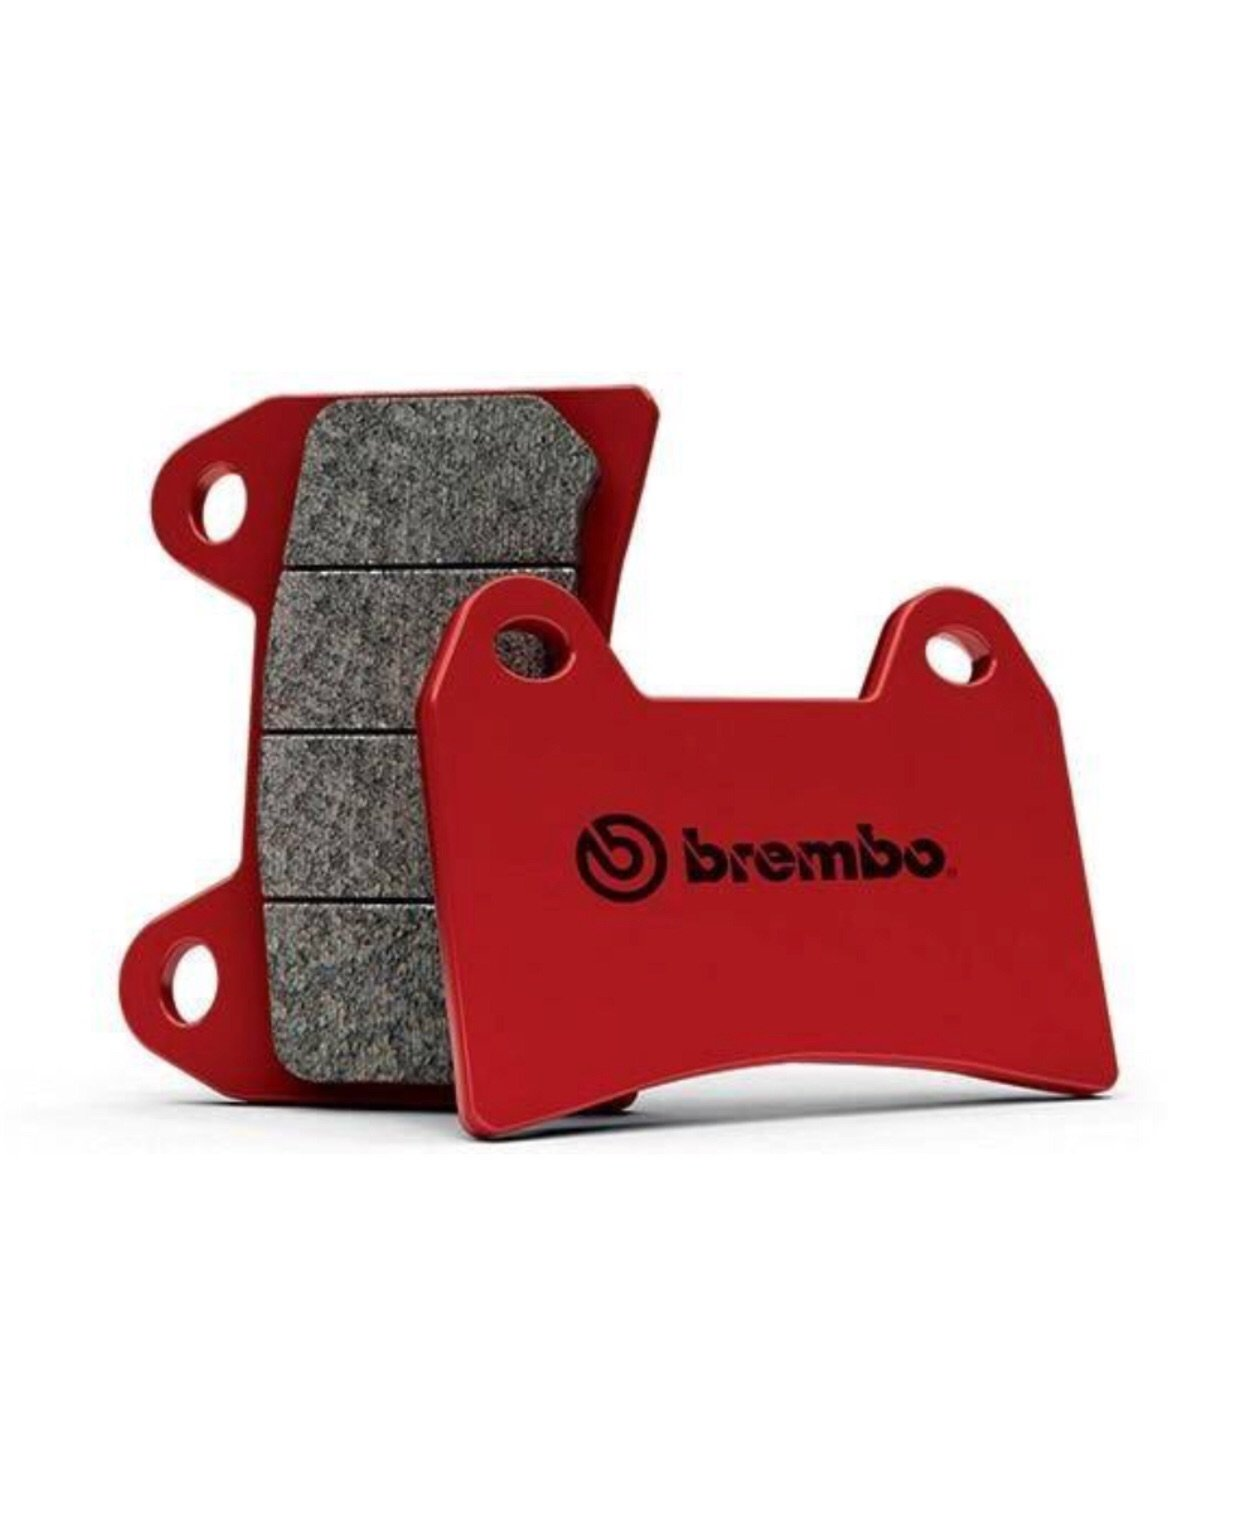 Kawasaki, Brake Pads, Brembo - Race and Trackday Parts